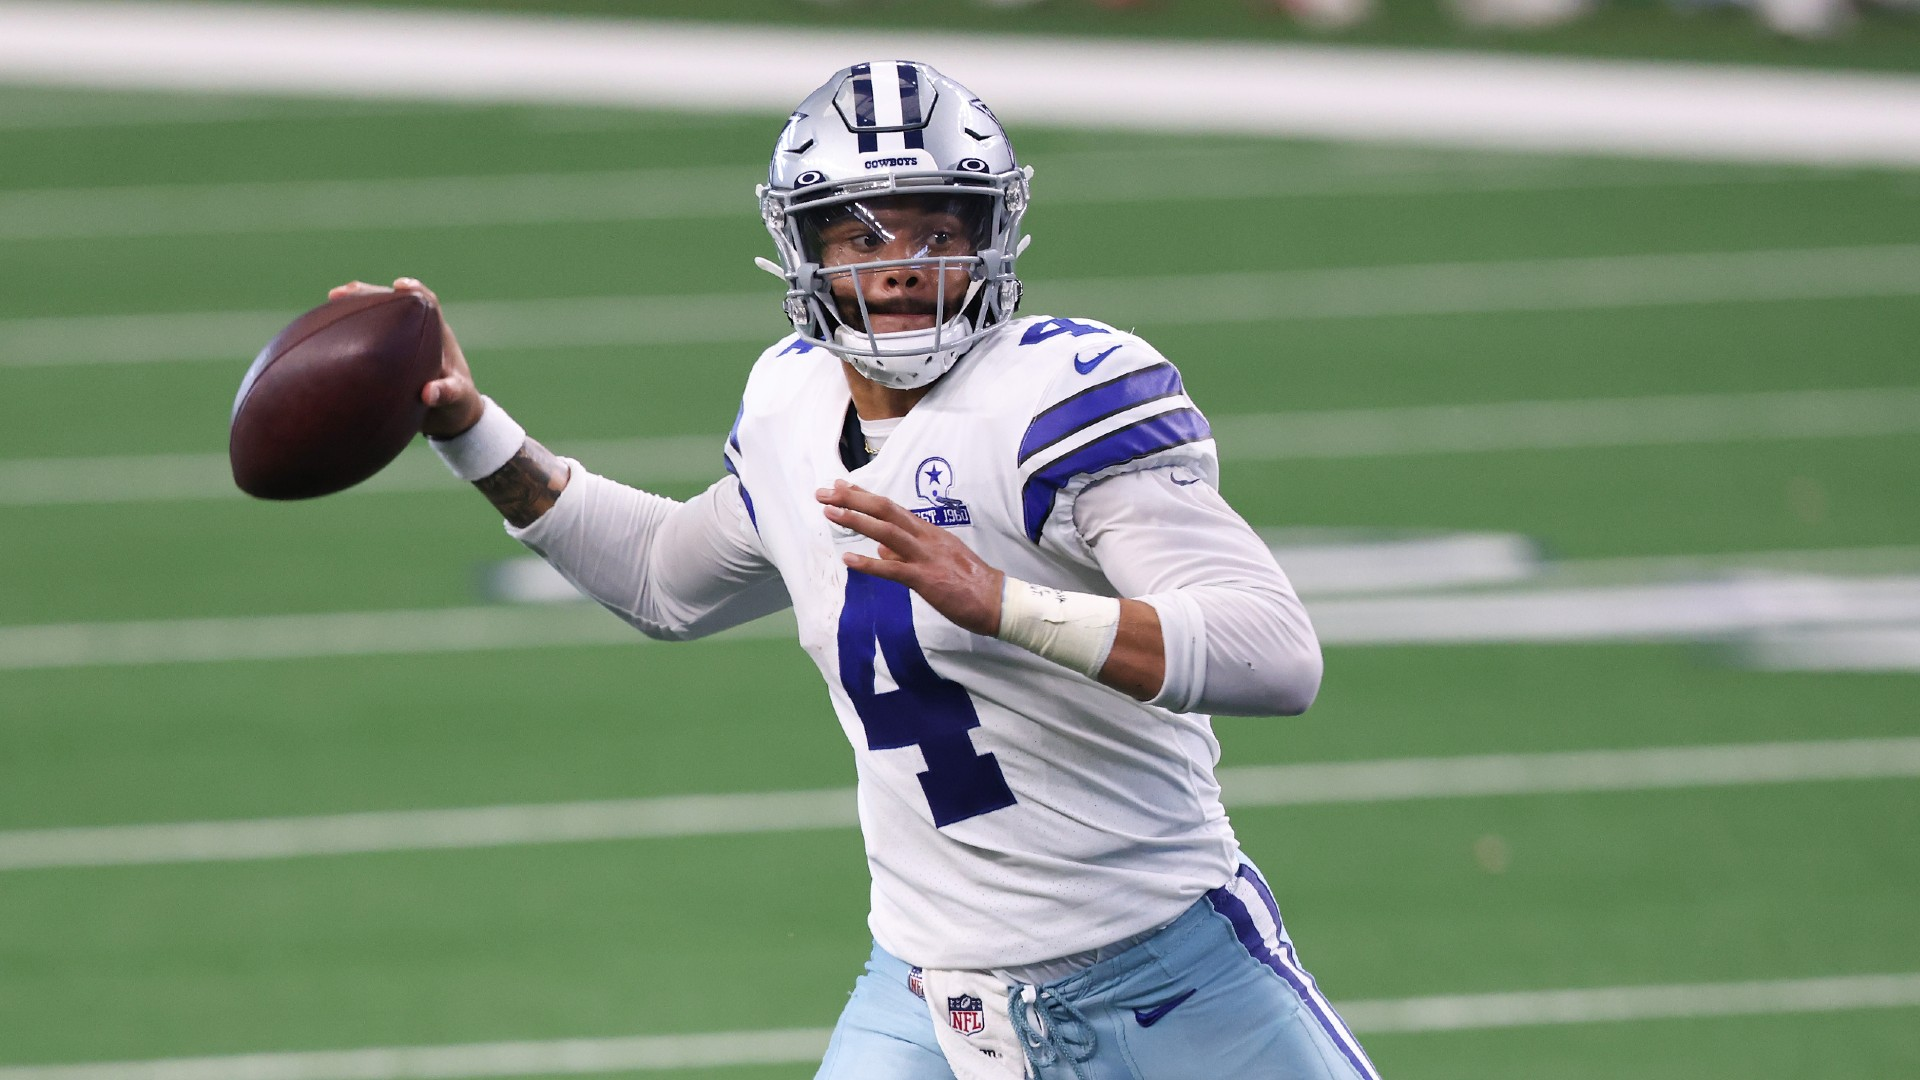 NFL Thanksgiving 2021 football schedule: NFL posts holiday games, opponents for Cowboys, Lions